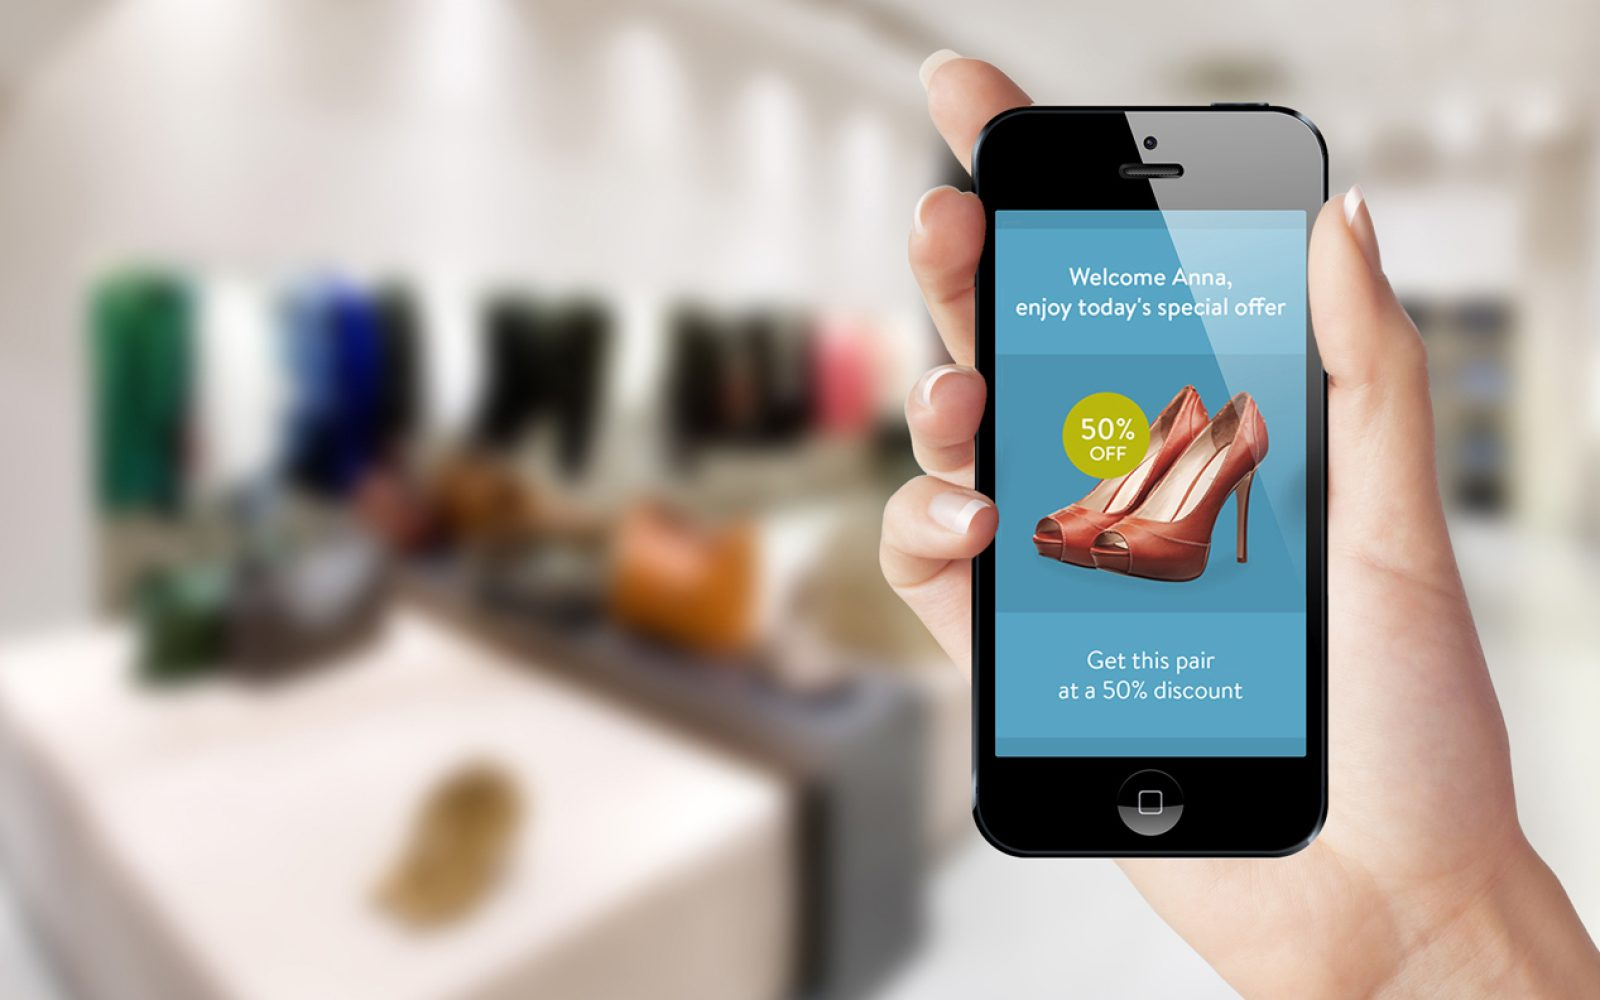 iBeacon briefing: What is it, and what can we expect from it